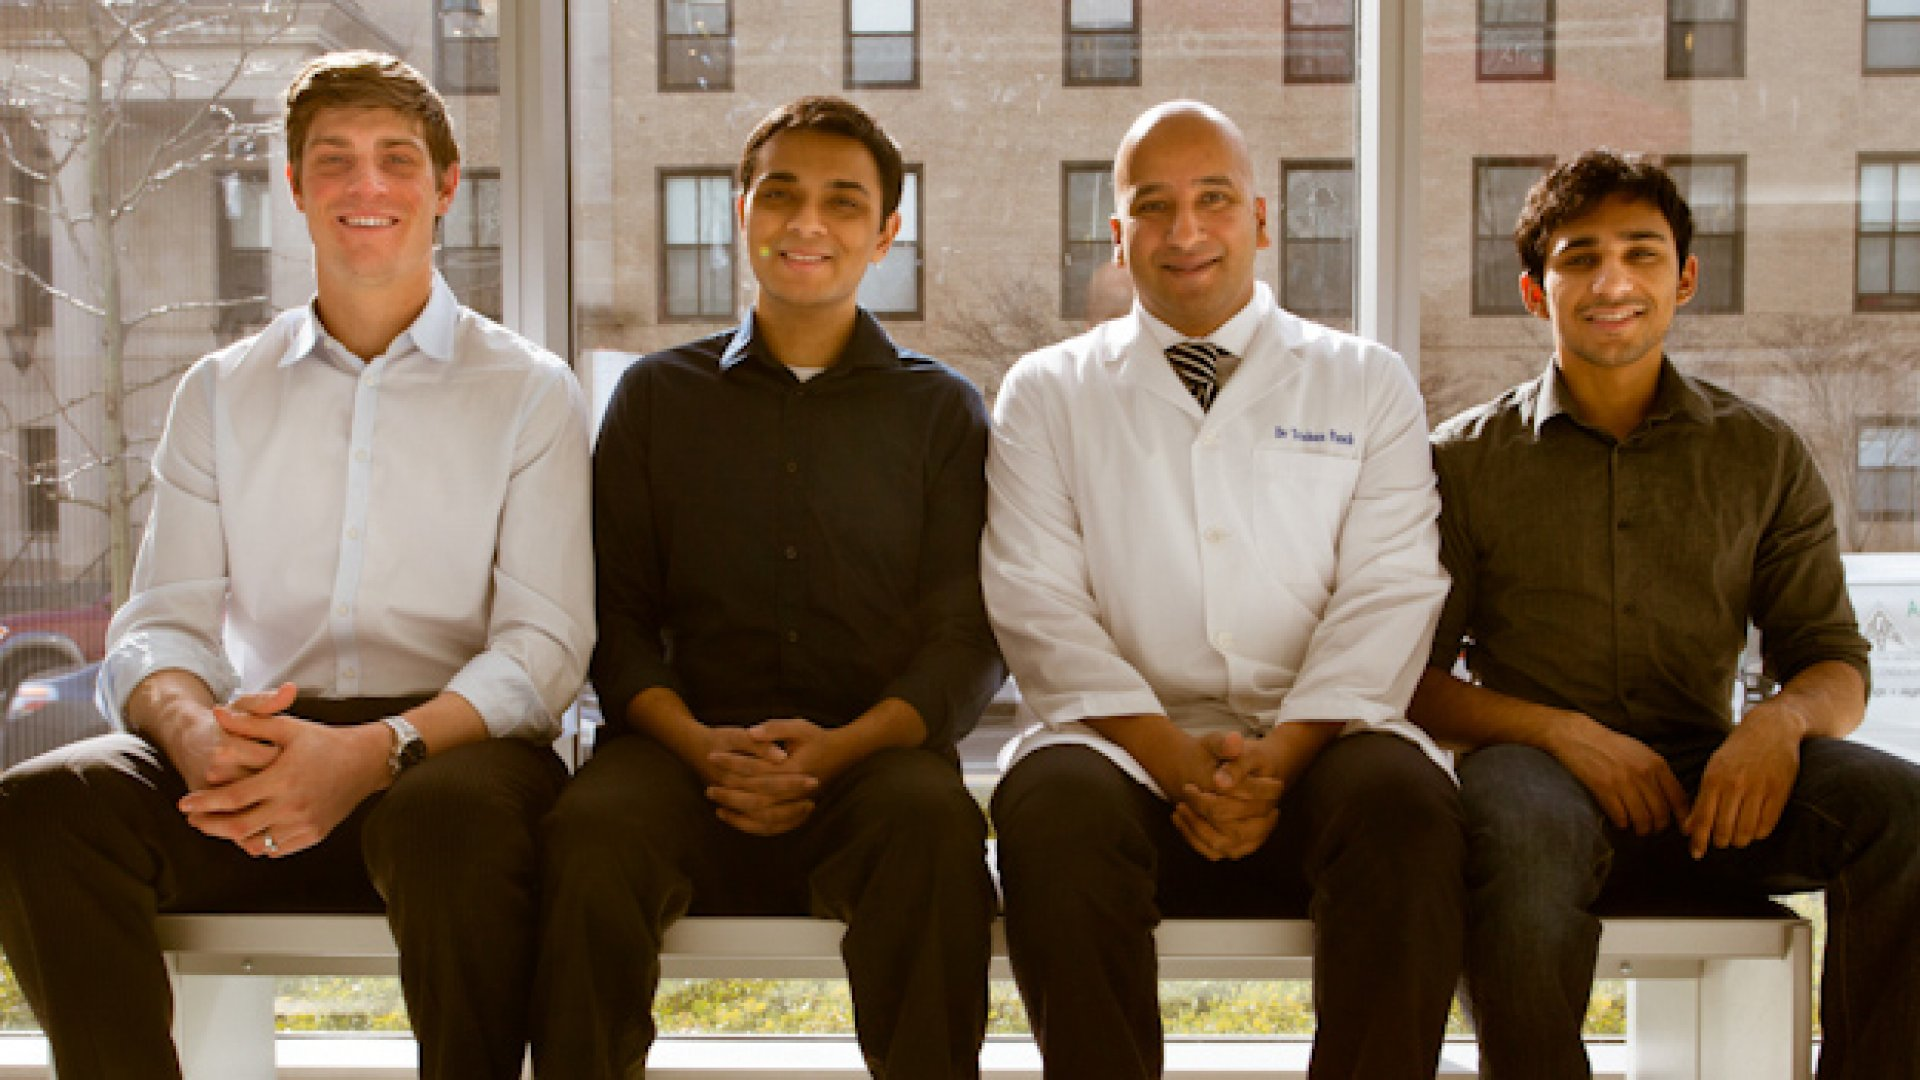 The Wellframe team (from left to right): Jacob Sattelmair, Archit Bhise, Trishan Panch and Vinnie Ramesh.